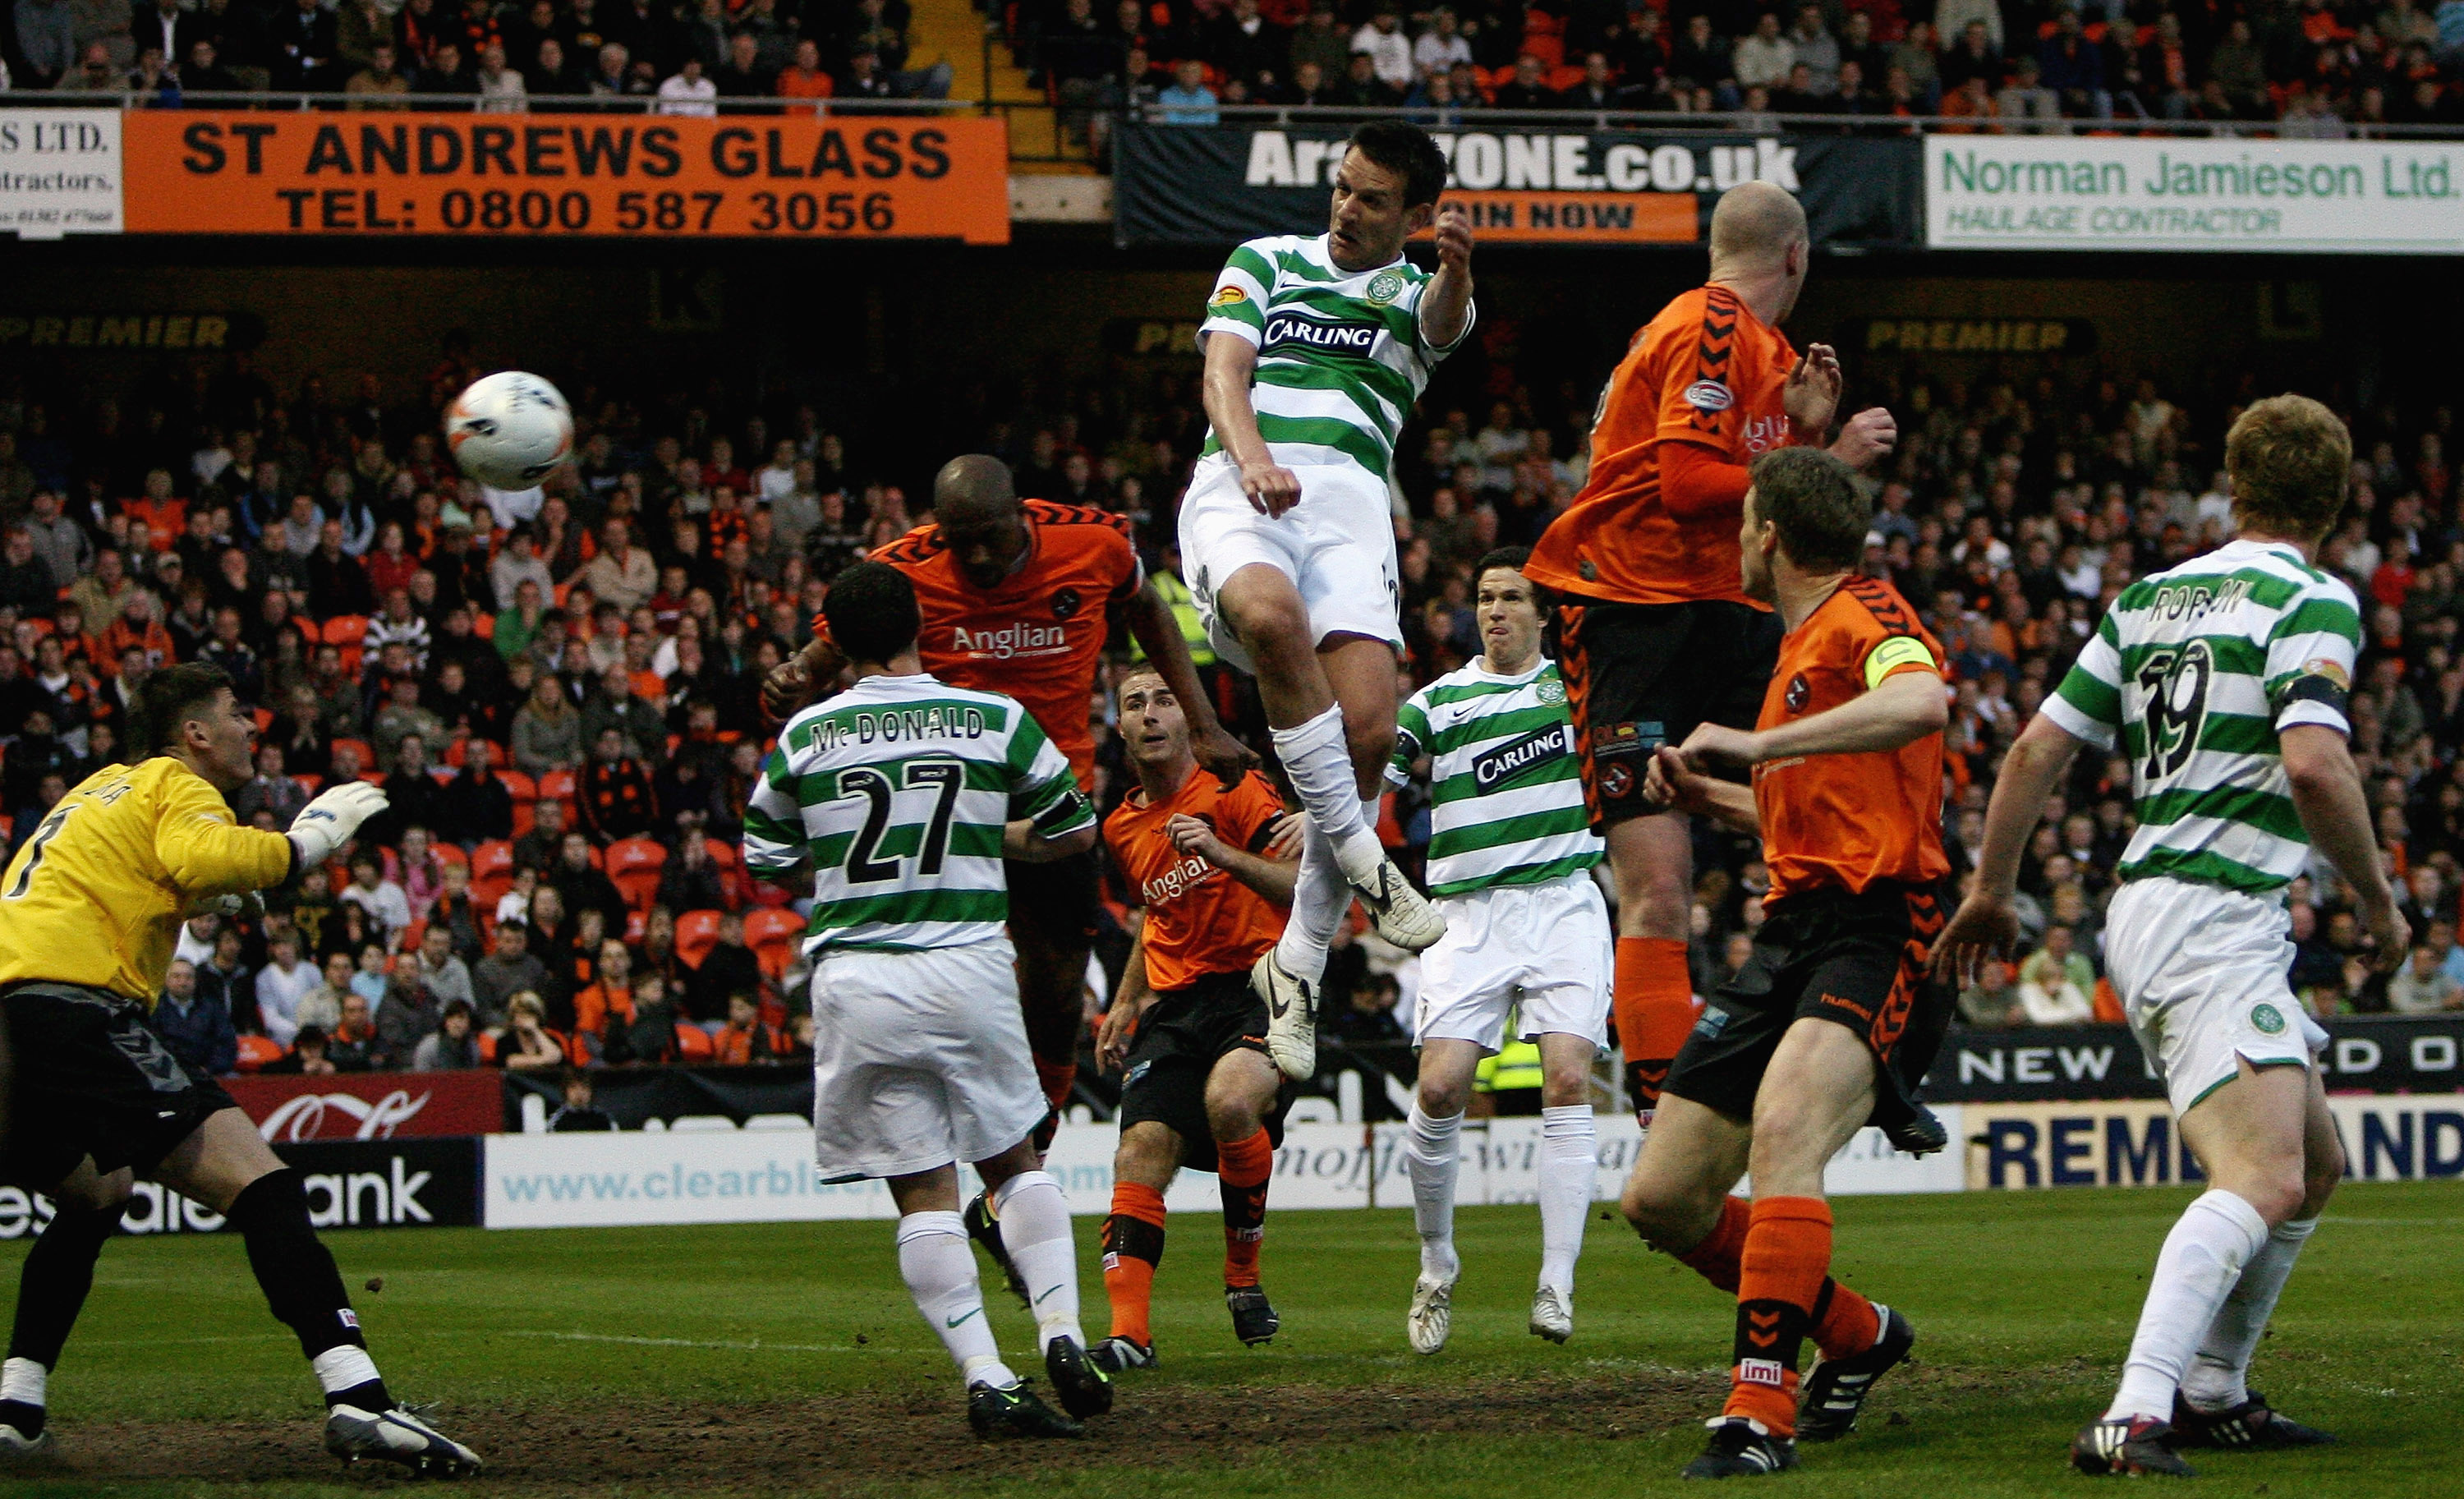 Jan Vennegoor of Hesselink scores for Celtic at Tannadice